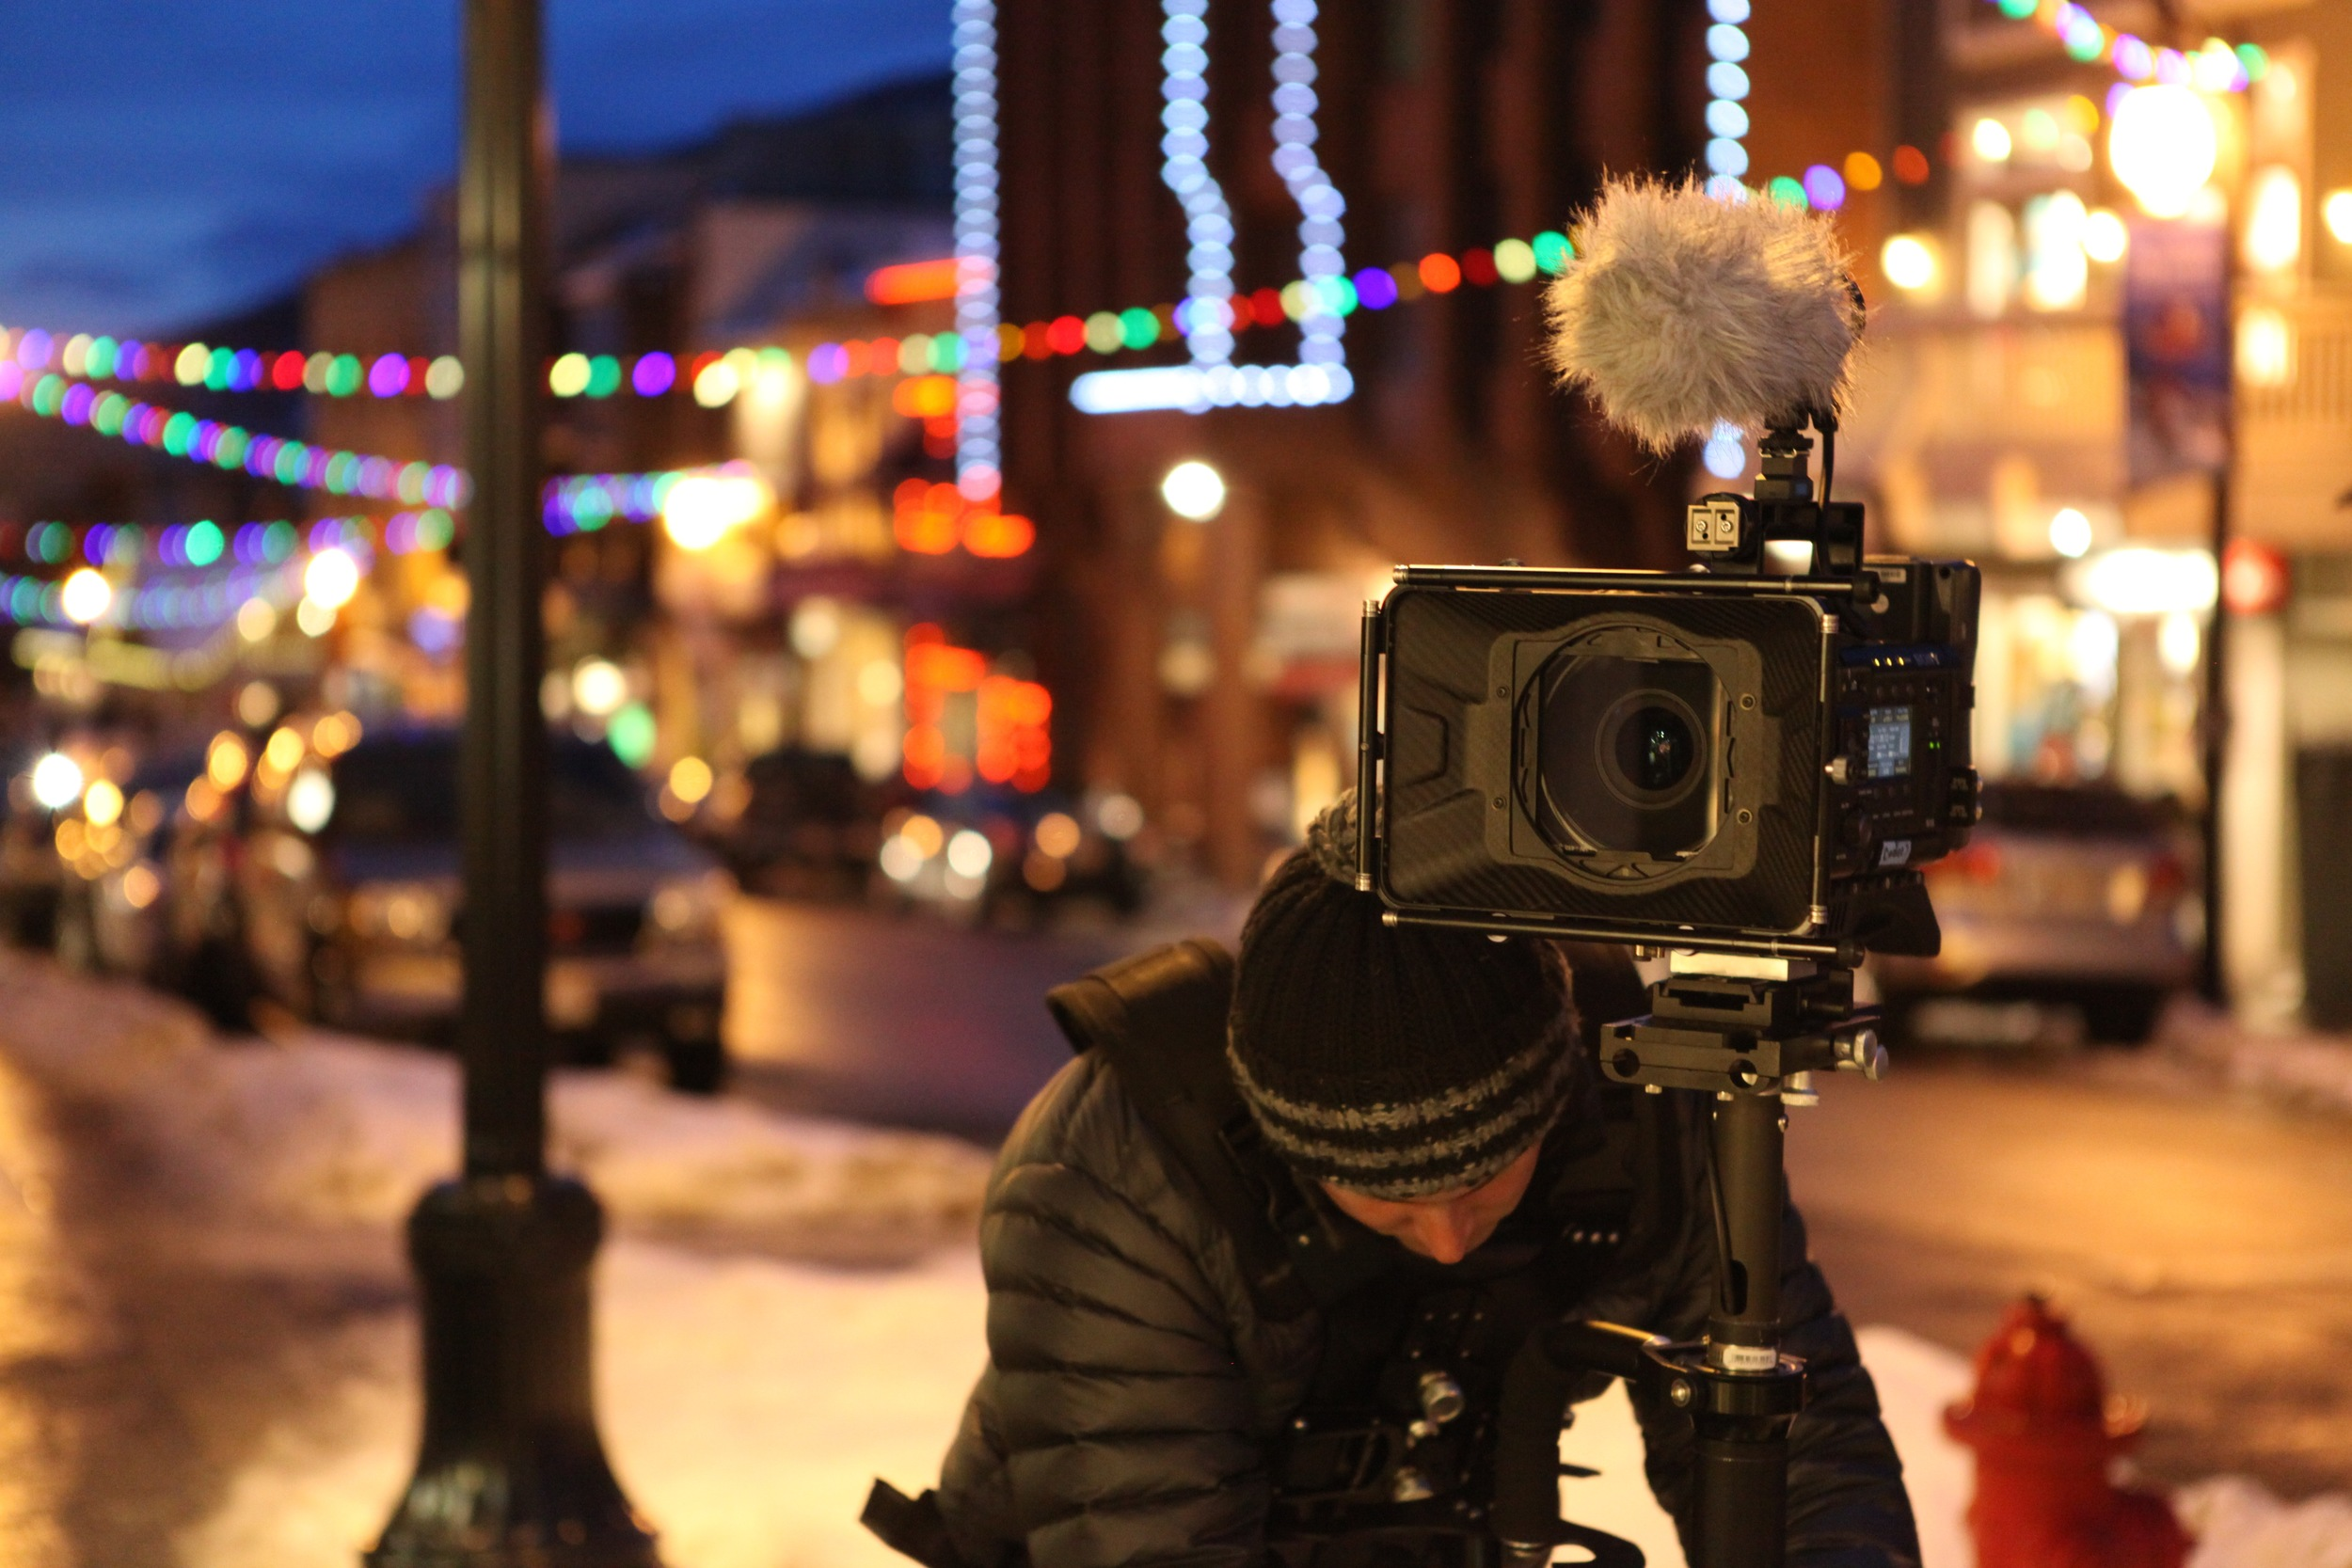 Filming on Park City's Main St, home of Sundance Film Festival